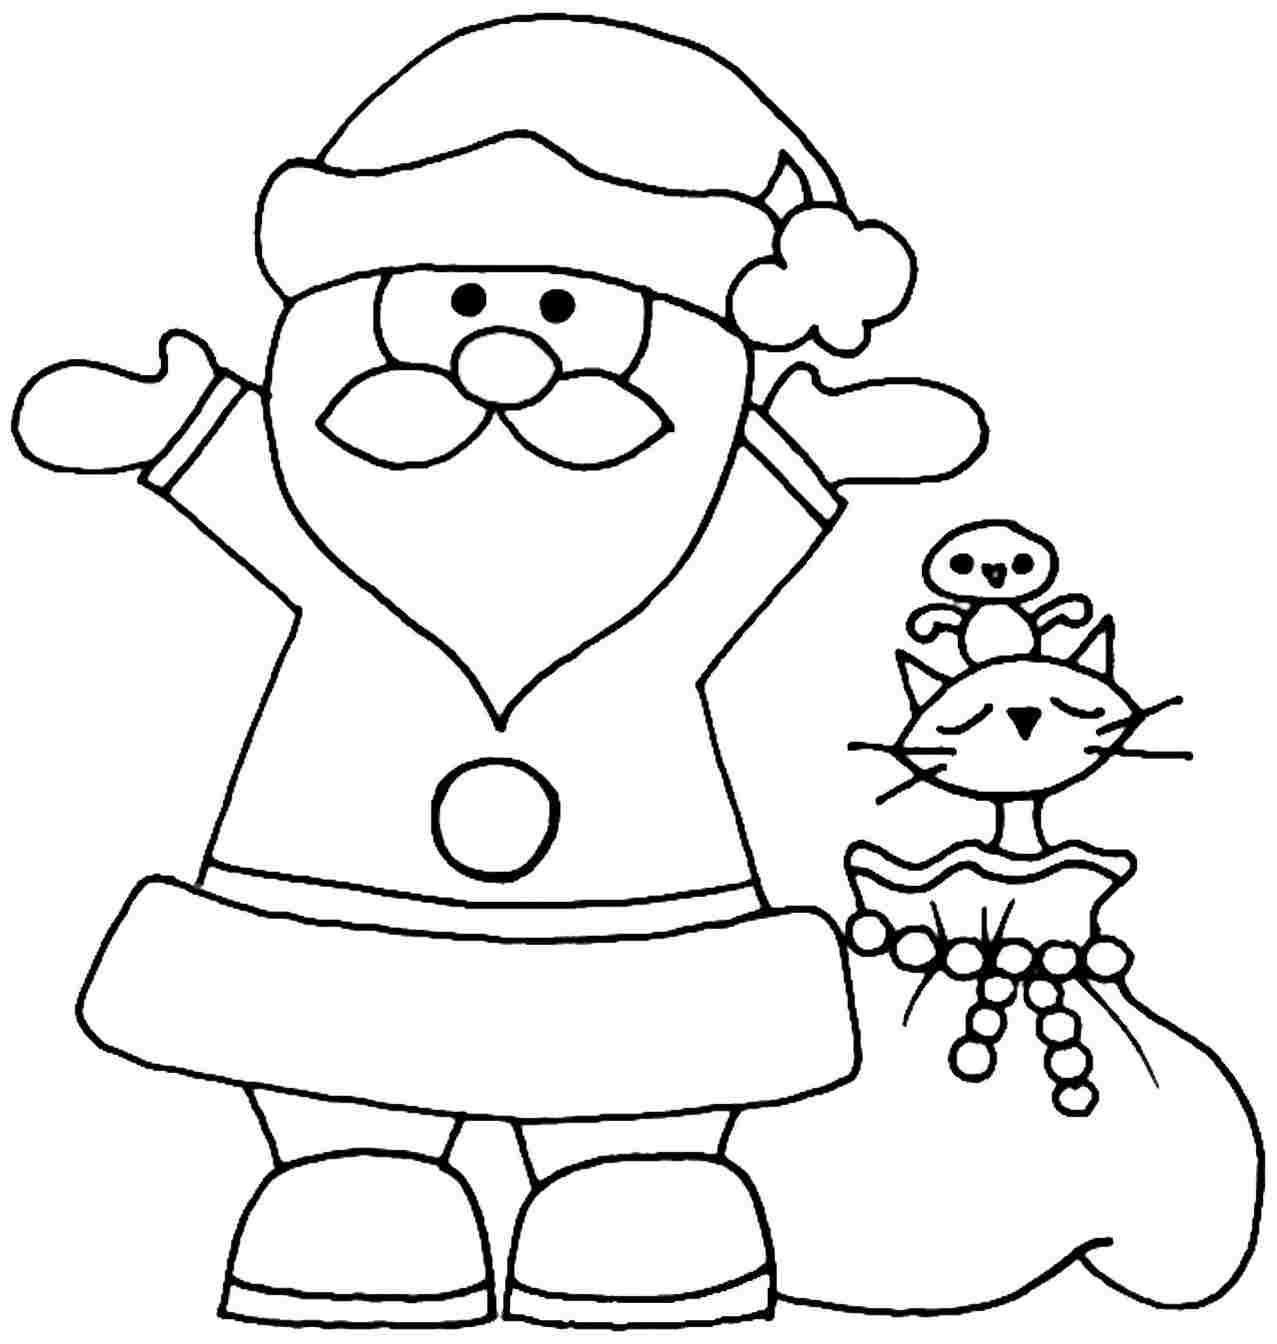 Uncategorized Coloring Pages Of Santa Claus santa claus coloring pages httpprocoloring comsanta claus